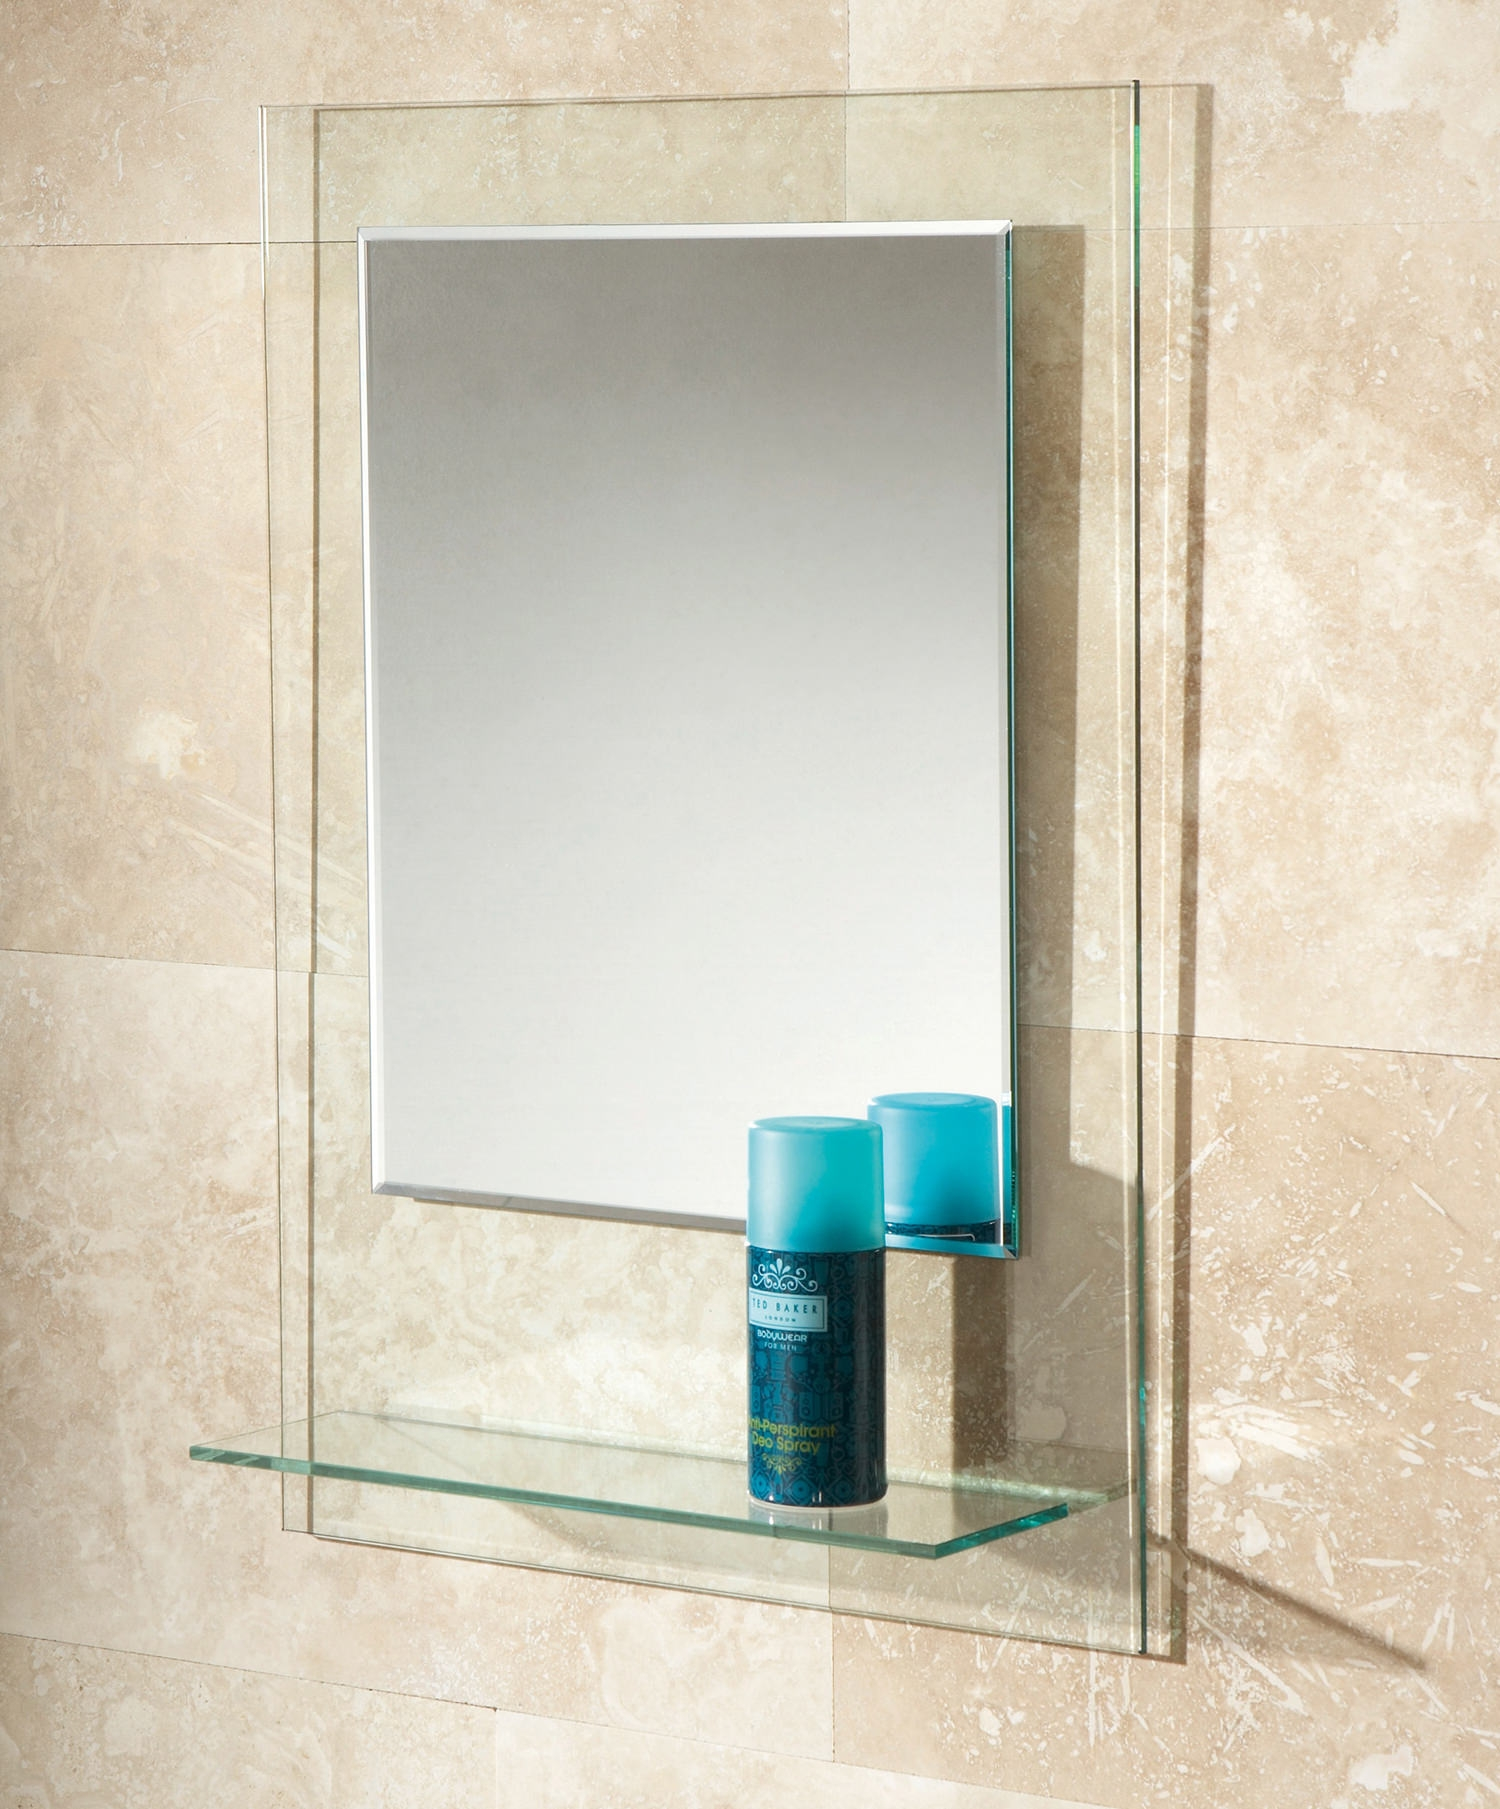 Hib Fuzion Bevelled Edge Mirror With Glass Shelf 72300100 With Bevelled Edge Mirrors (View 13 of 15)